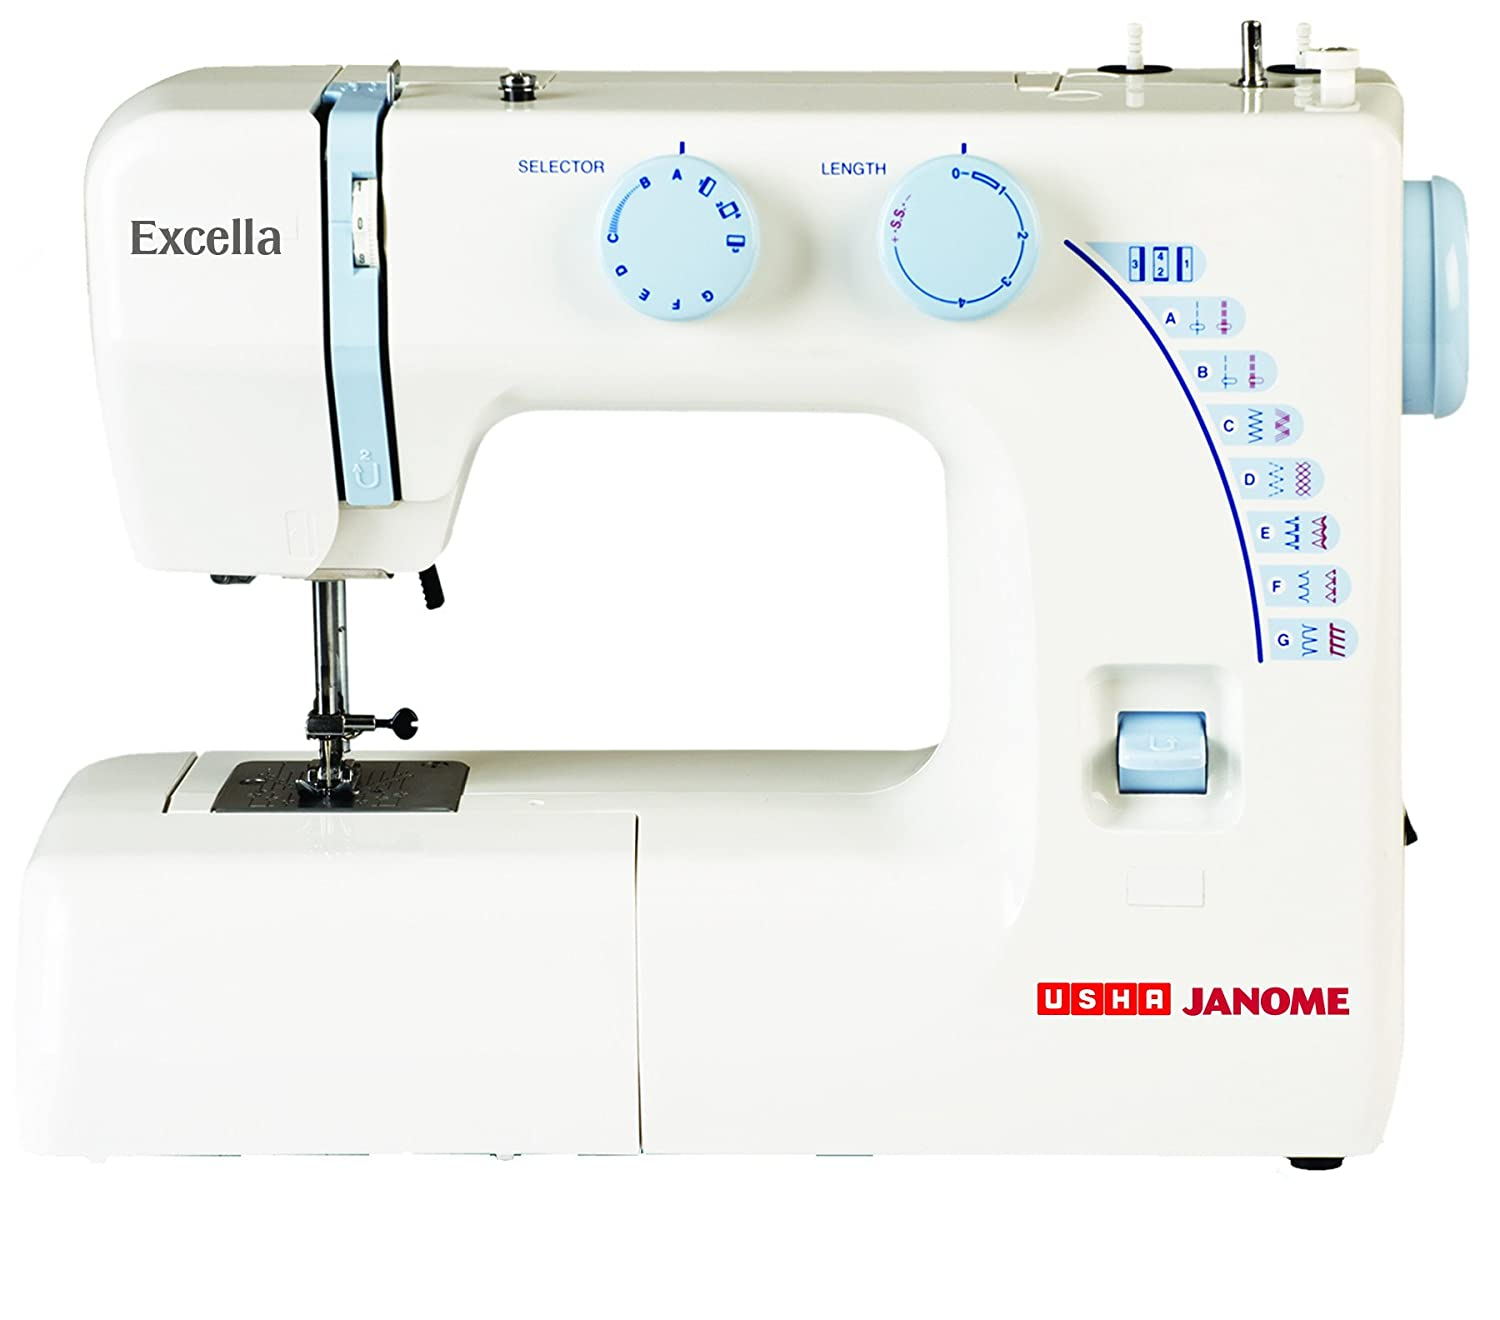 Usha Janome Excella Automatic 80-Watt Zig-Zag Sewing Machine